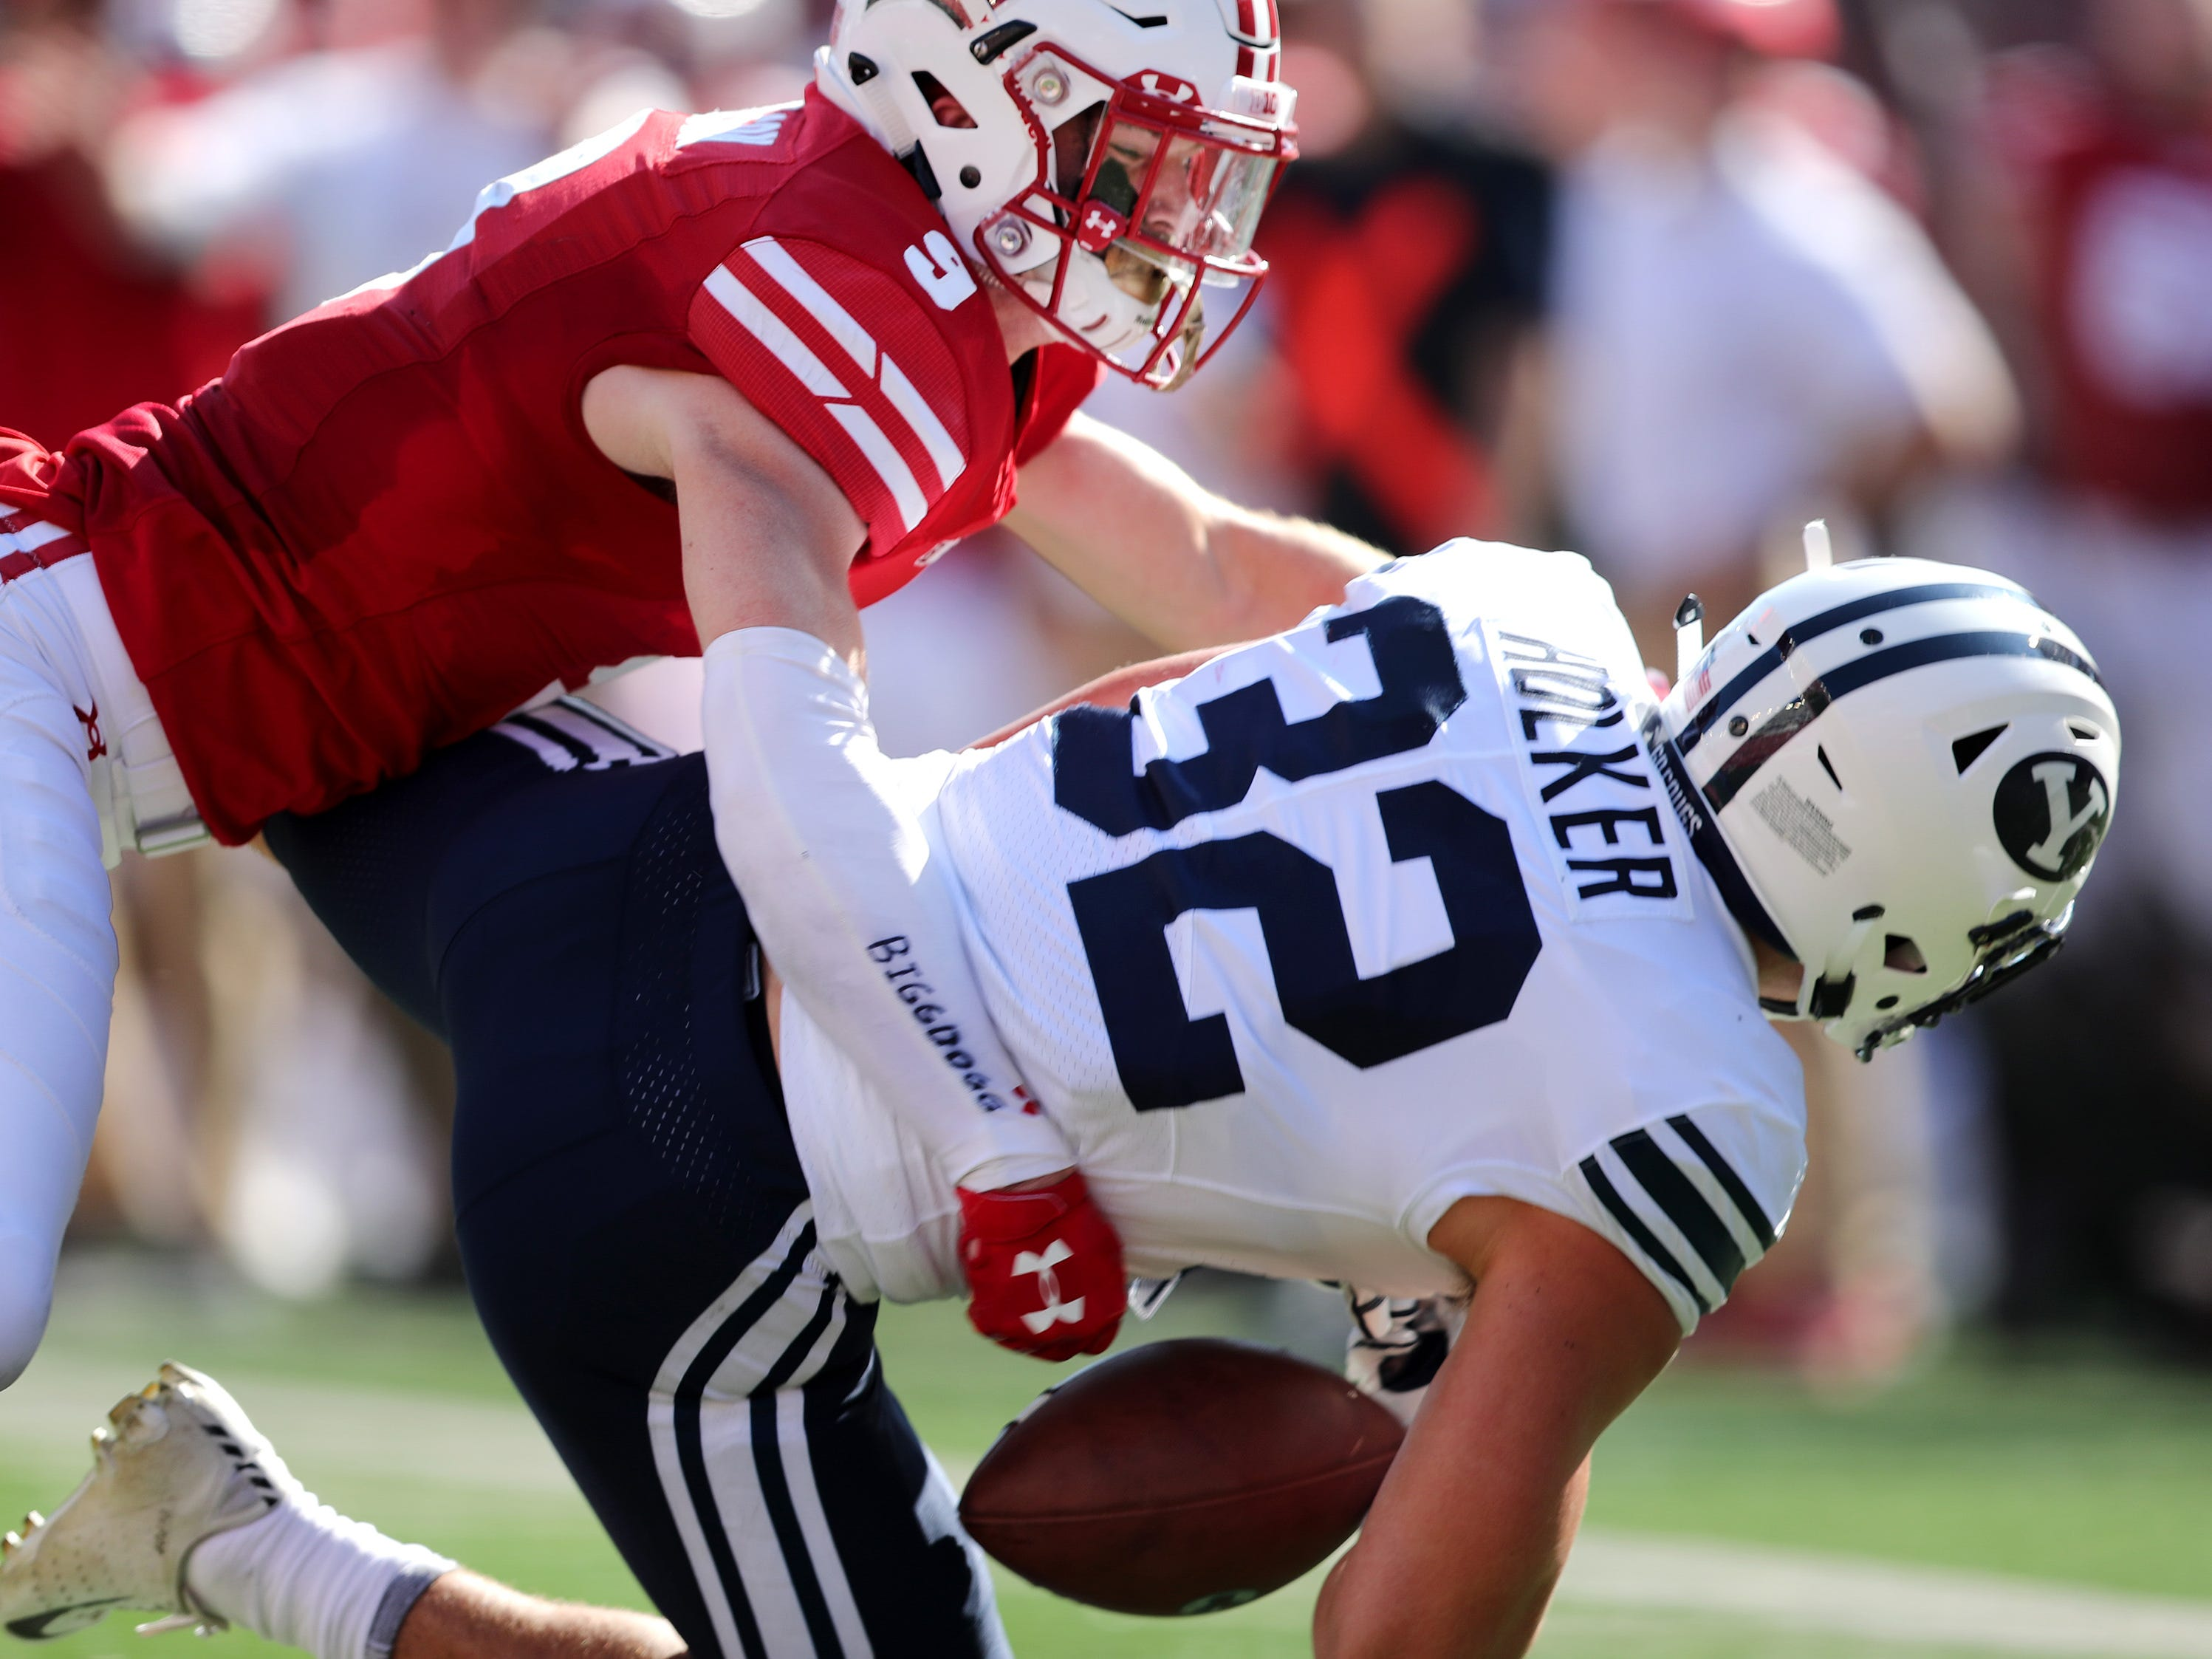 Brigham Young tight end Dallin Holker can't control the ball as he is tackled by Wisconsin safety Scott Nelson.